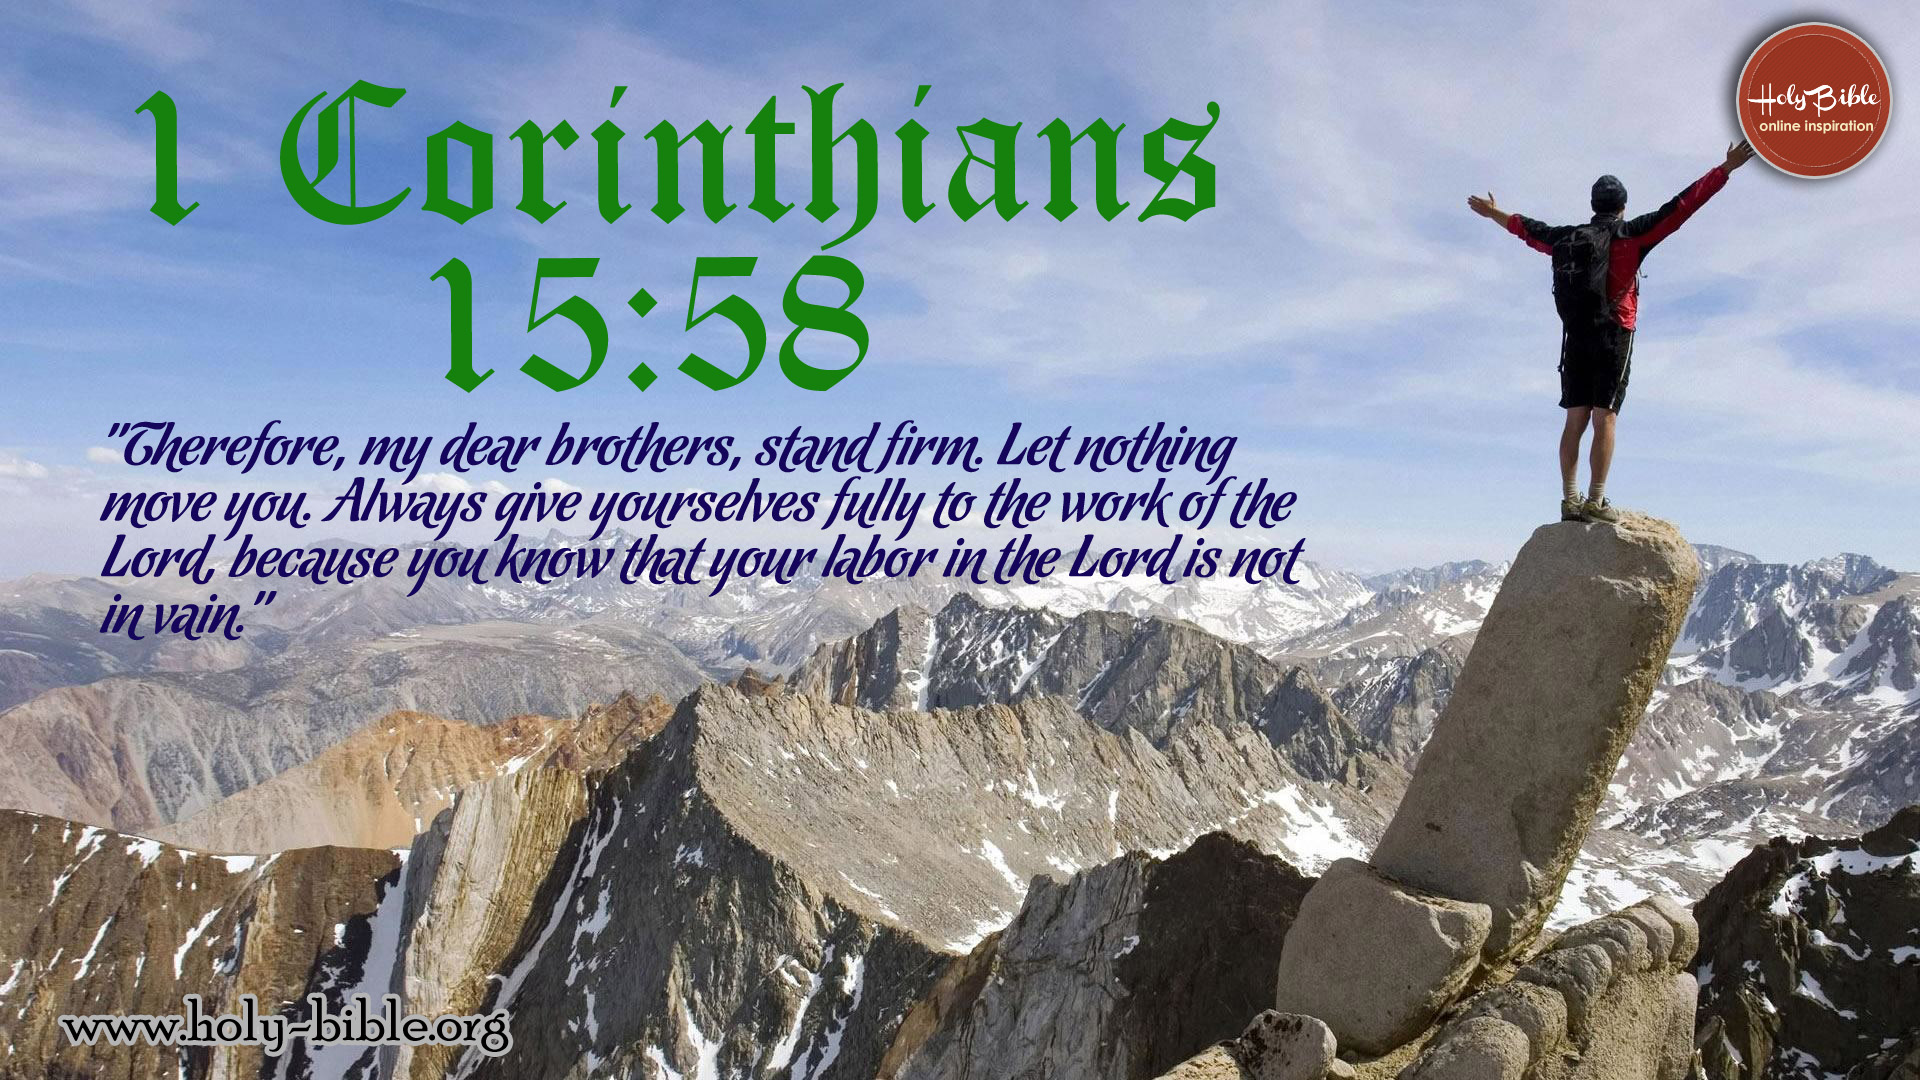 Bible Verse of the day - 1 Corinthians 15:58